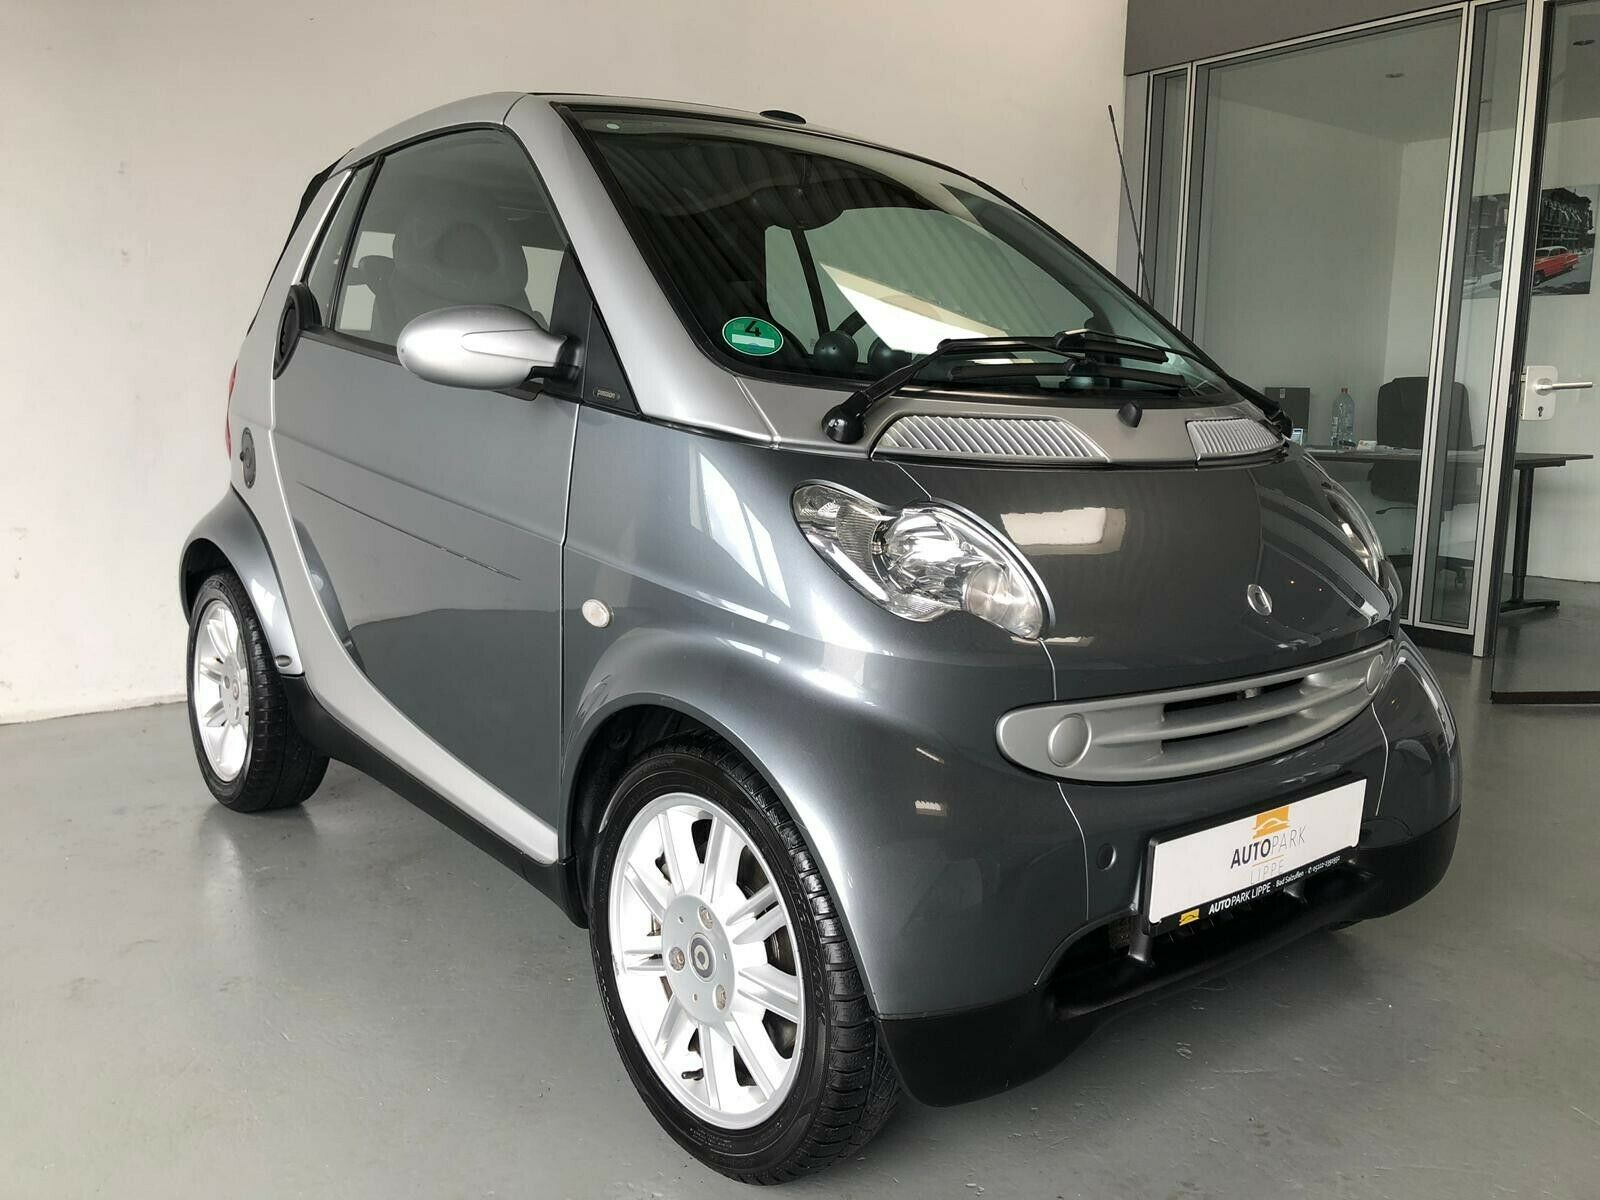 SMART cabrio / fortwo Basis Sitzheizung Klima Automa.